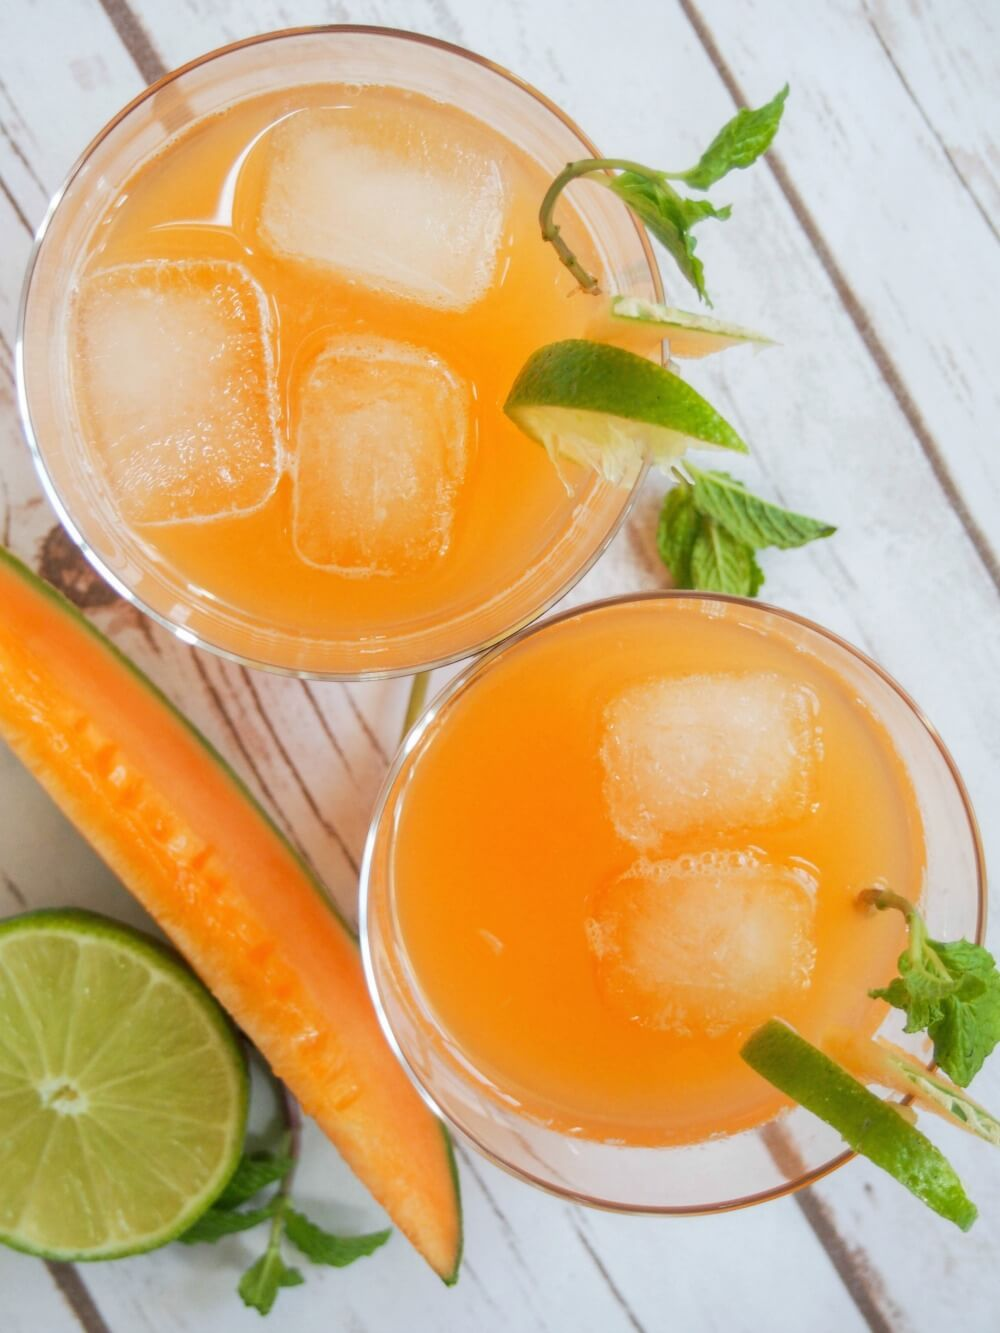 Cantaloupe agua fresca is easy to make and incredibly refreshing. Light and gently fruity, it's a family-friendly drink perfect for a warm day. All you need is cantaloupe, water and lime.